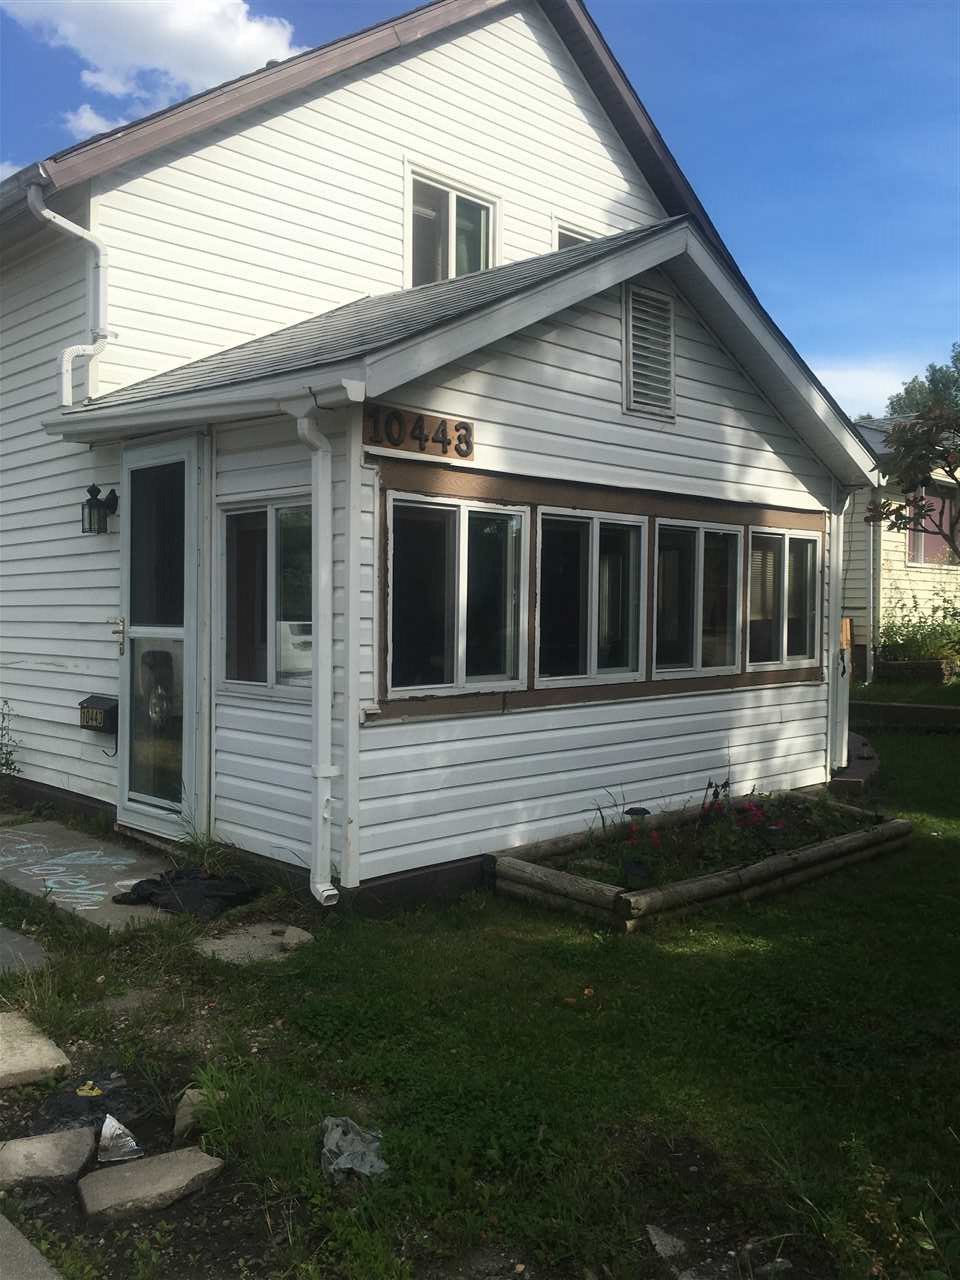 Huge 50x150 corner lot with new double garage, perfect for redevelopment (property next door same size also for sale)! The 2 story home comes with 3 bedrooms and has all new windows, newer kitchen cabinets, flooring, insulation upgrades, plumping upgrades, 100 amp electrical, high efficiency furnace and a large sun room. Awesome location close to schools, shopping and transportation. Live in or rent, re-develop in future! Appliances neg.